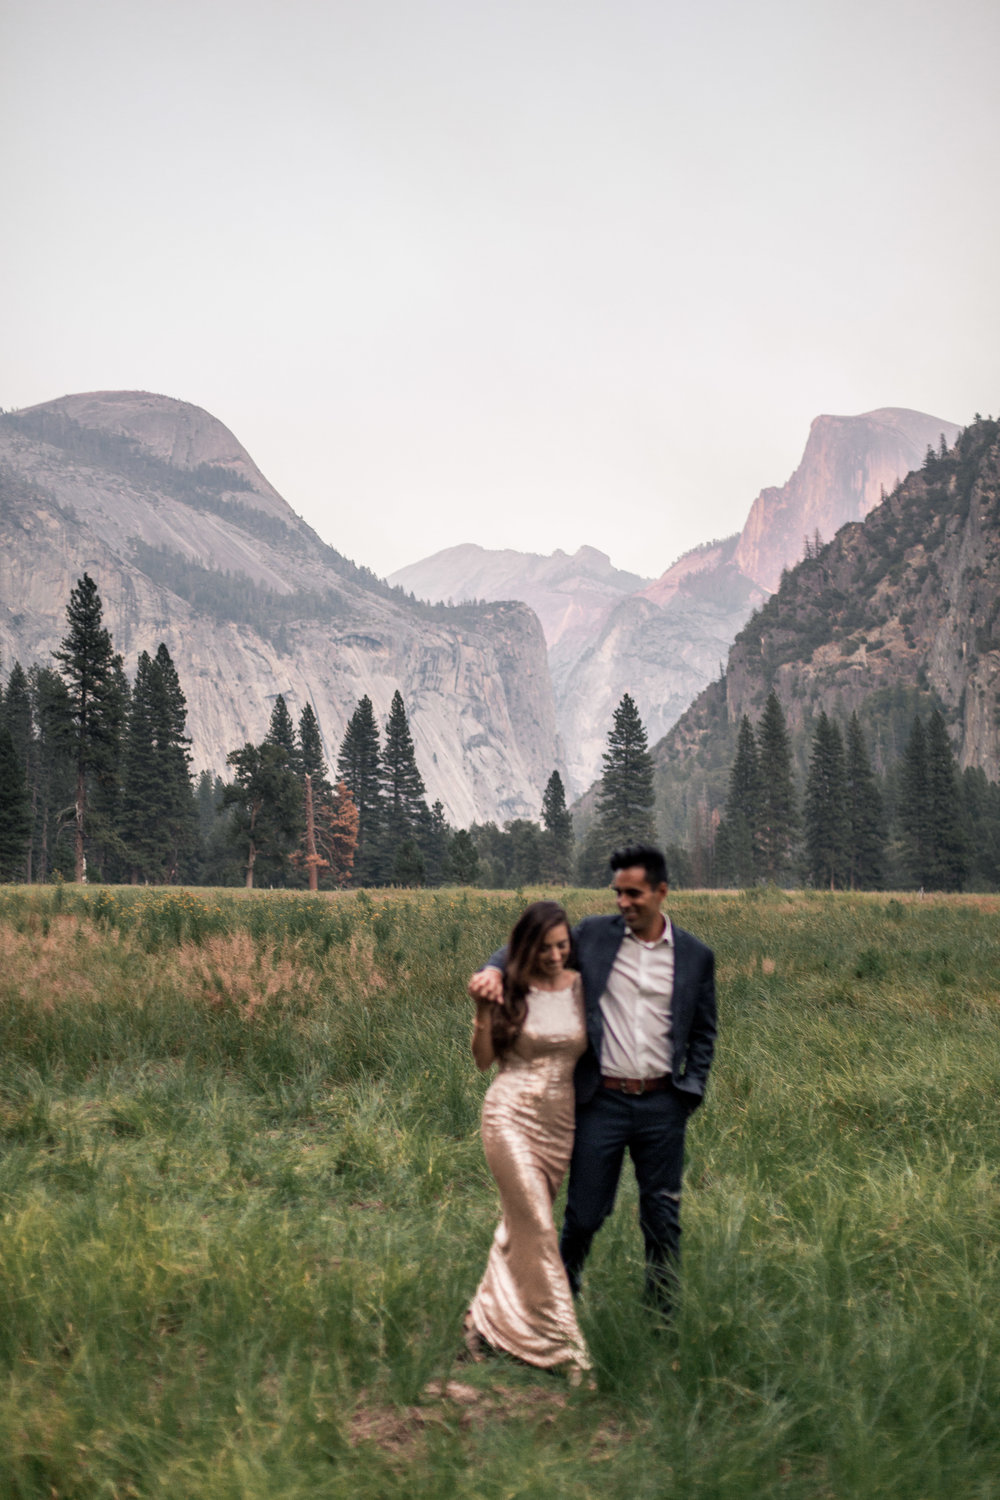 nicole-daacke-photography-yosemite-national-park-adventurous-engagement-session-half-dome-engagement-session-anniversary-photographer-yosemite-elopement-photographer-yosemite-intimate-wedding-photography-39.jpg